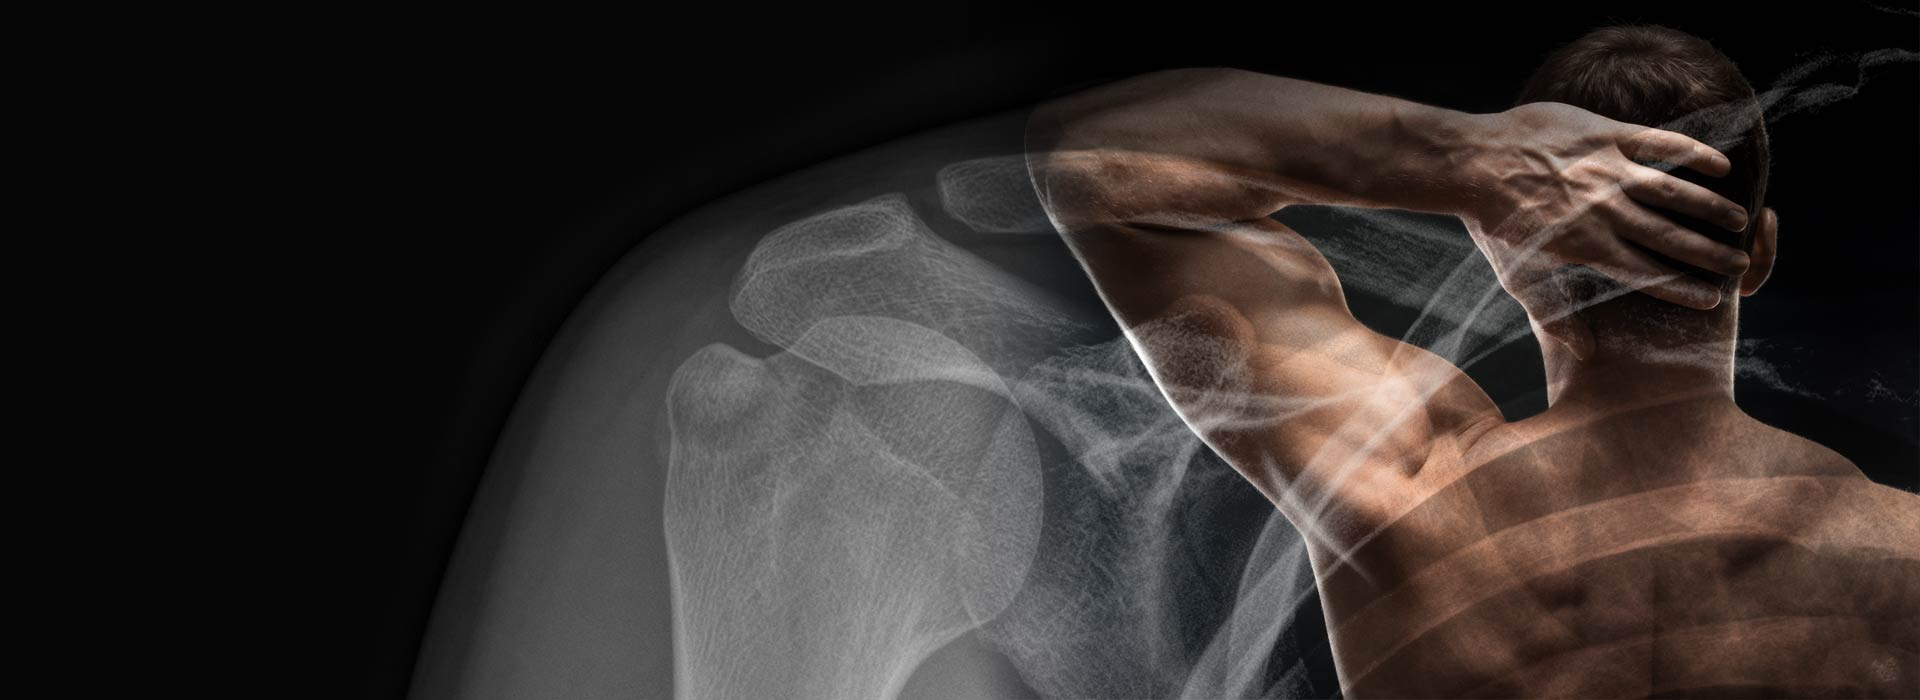 Innovations in orthopaedic surgery